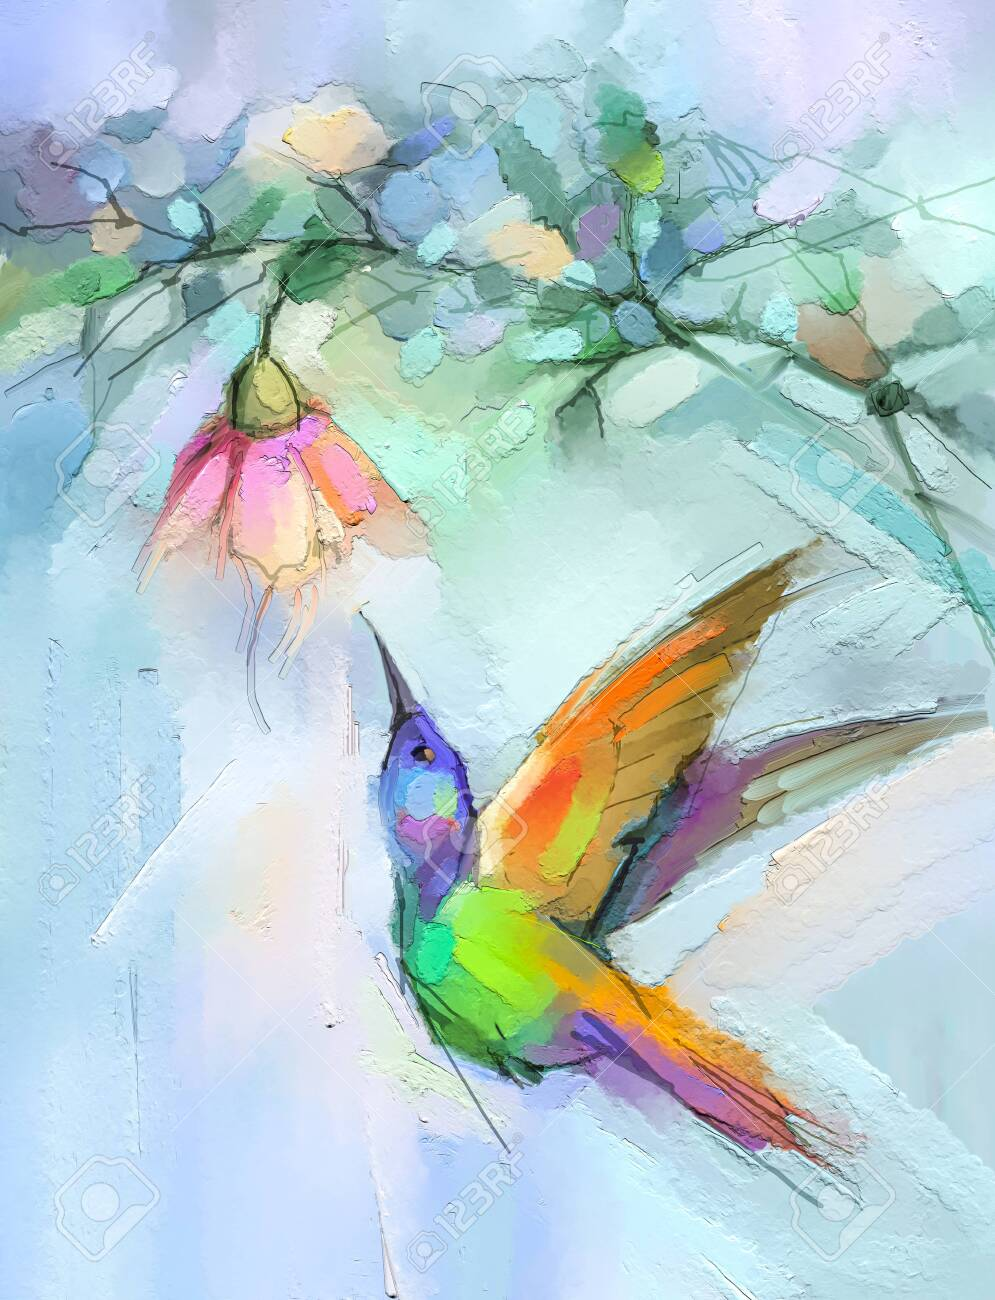 Abstract Colorful Oil, Acrylic Painting Of Bird (Hummingbird).. Stock  Photo, Picture And Royalty Free Image. Image 144991629.